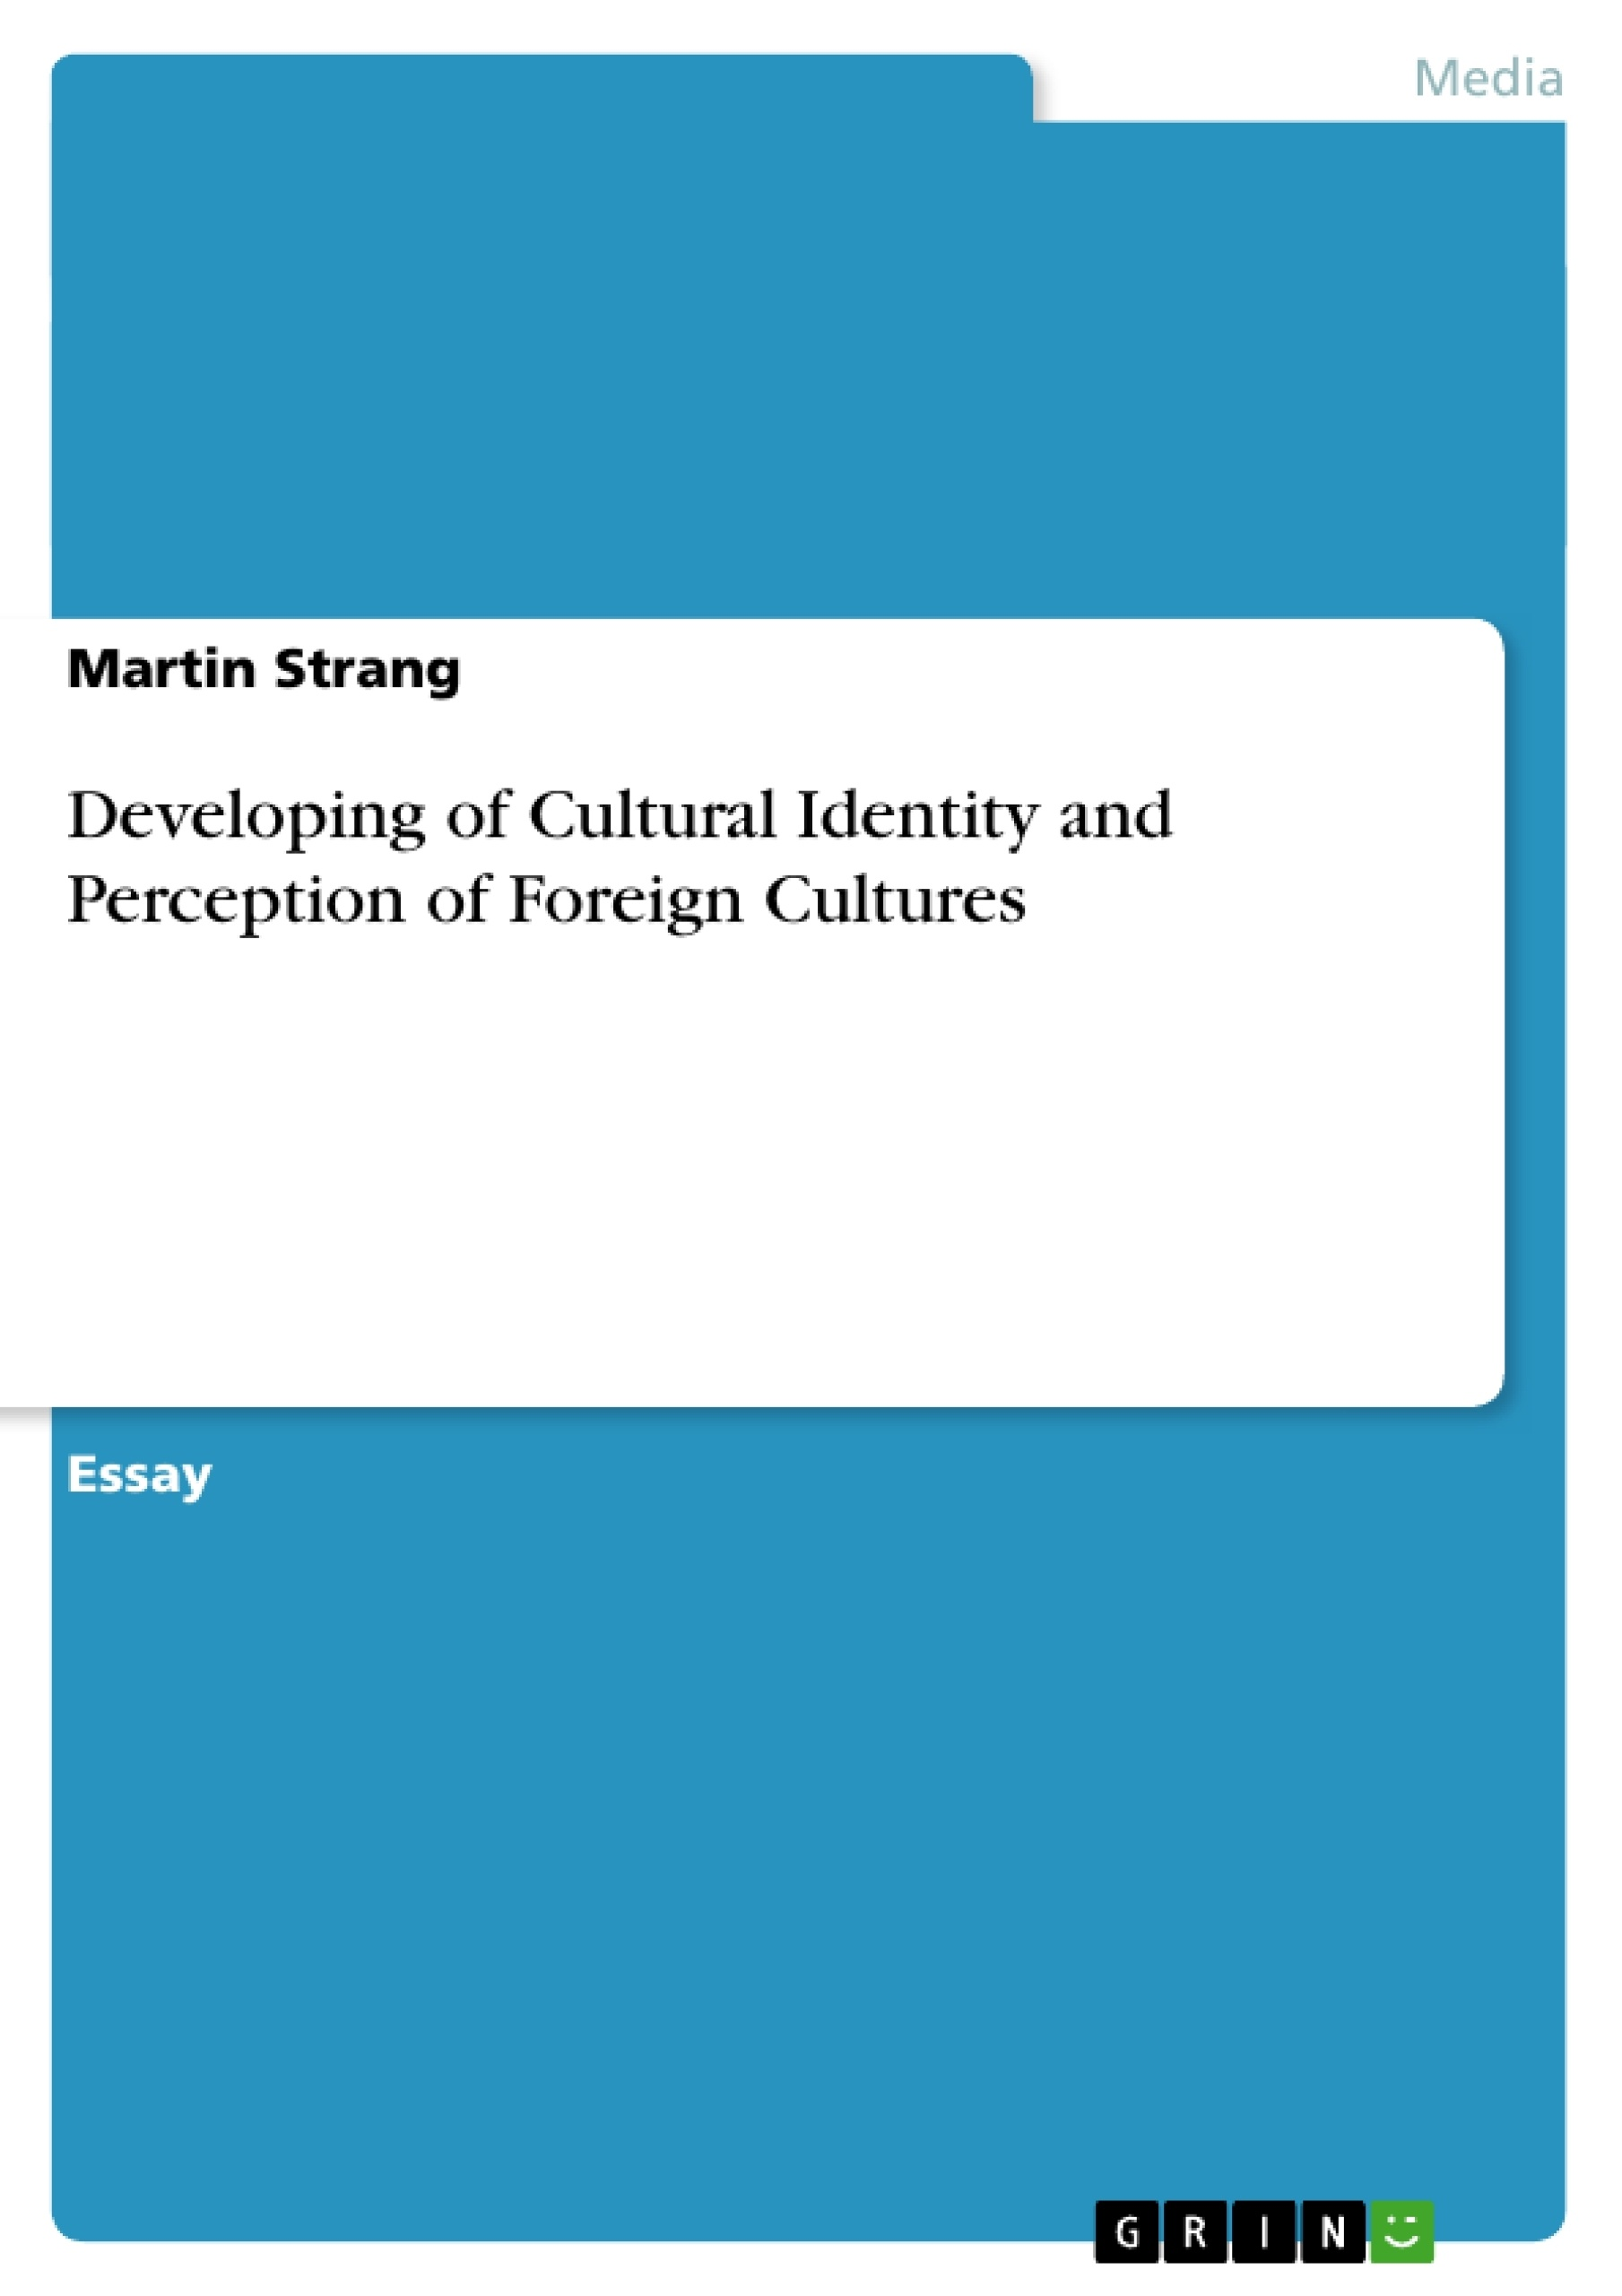 Title: Developing of Cultural Identity and Perception of Foreign Cultures